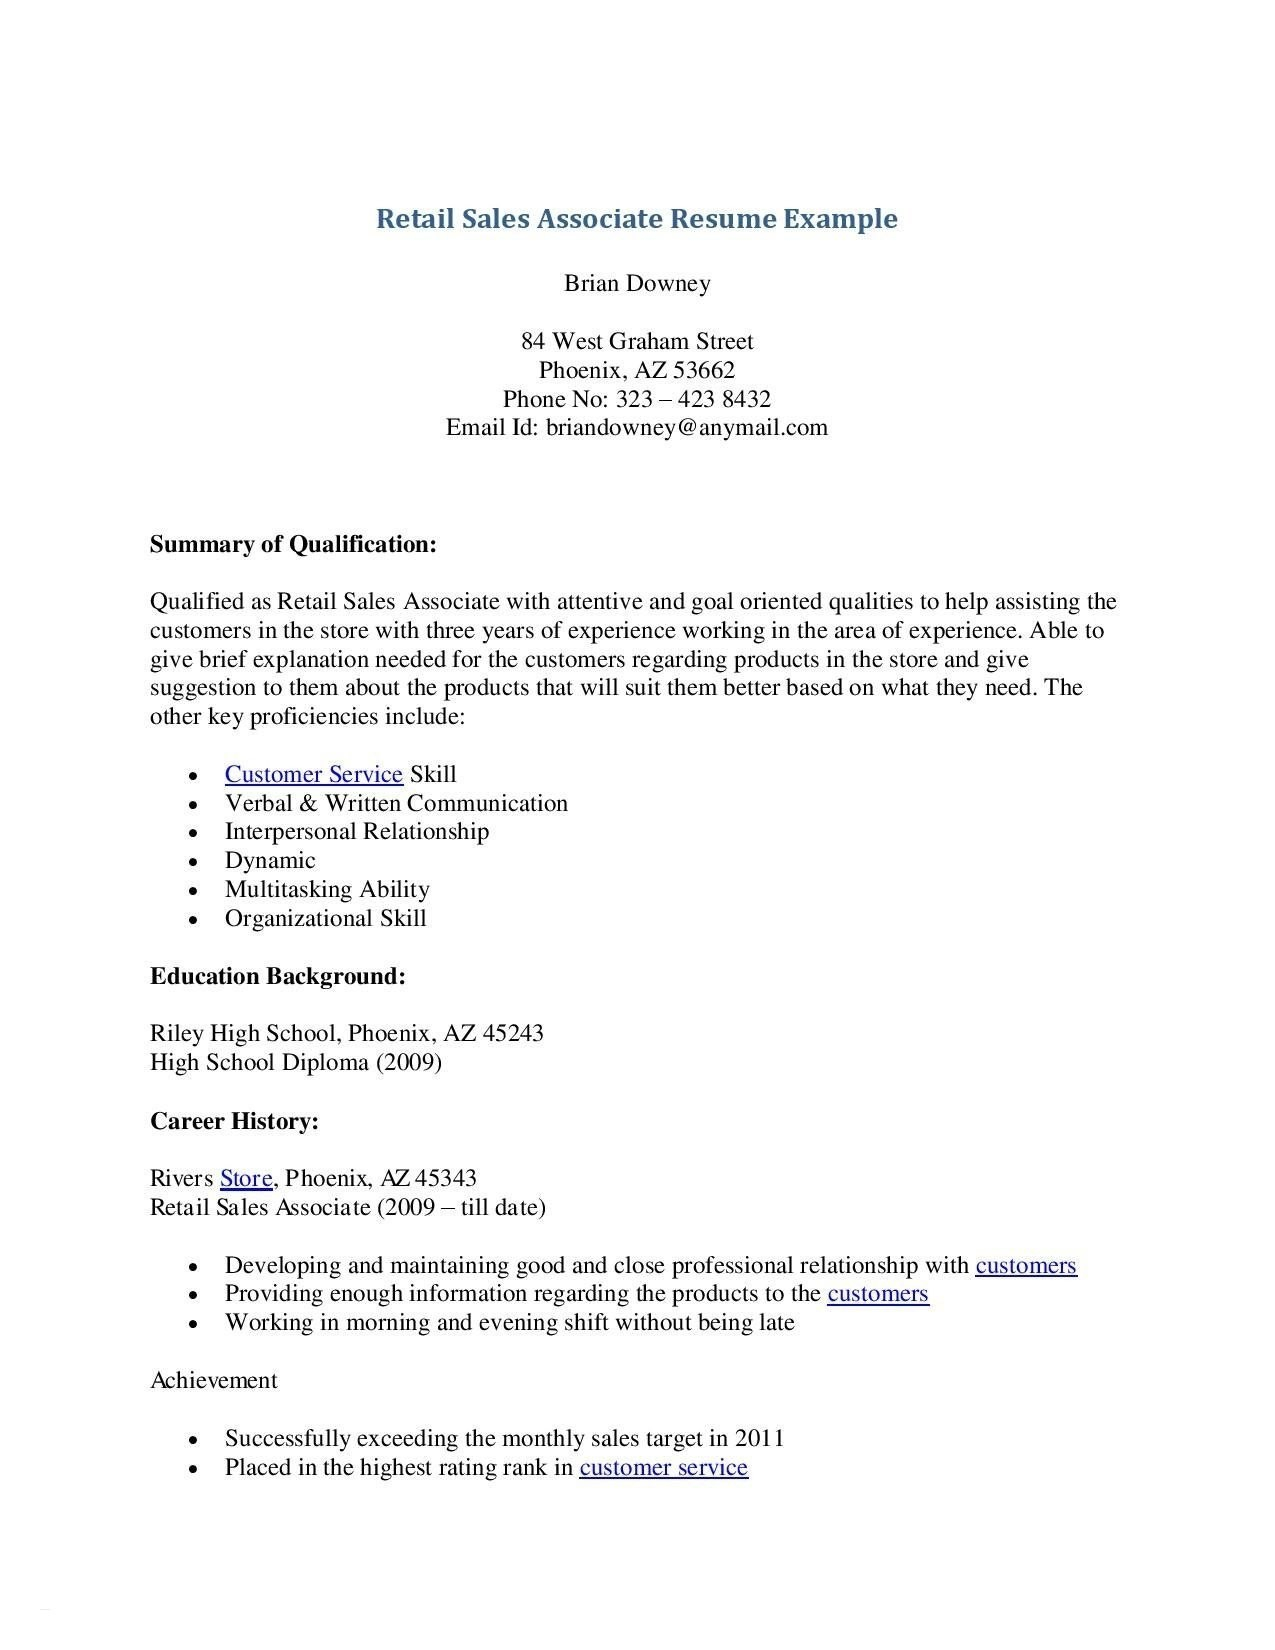 Sales Manager Resume Examples - Retail Sales Manager Resume Lovely Retail Resume Sample